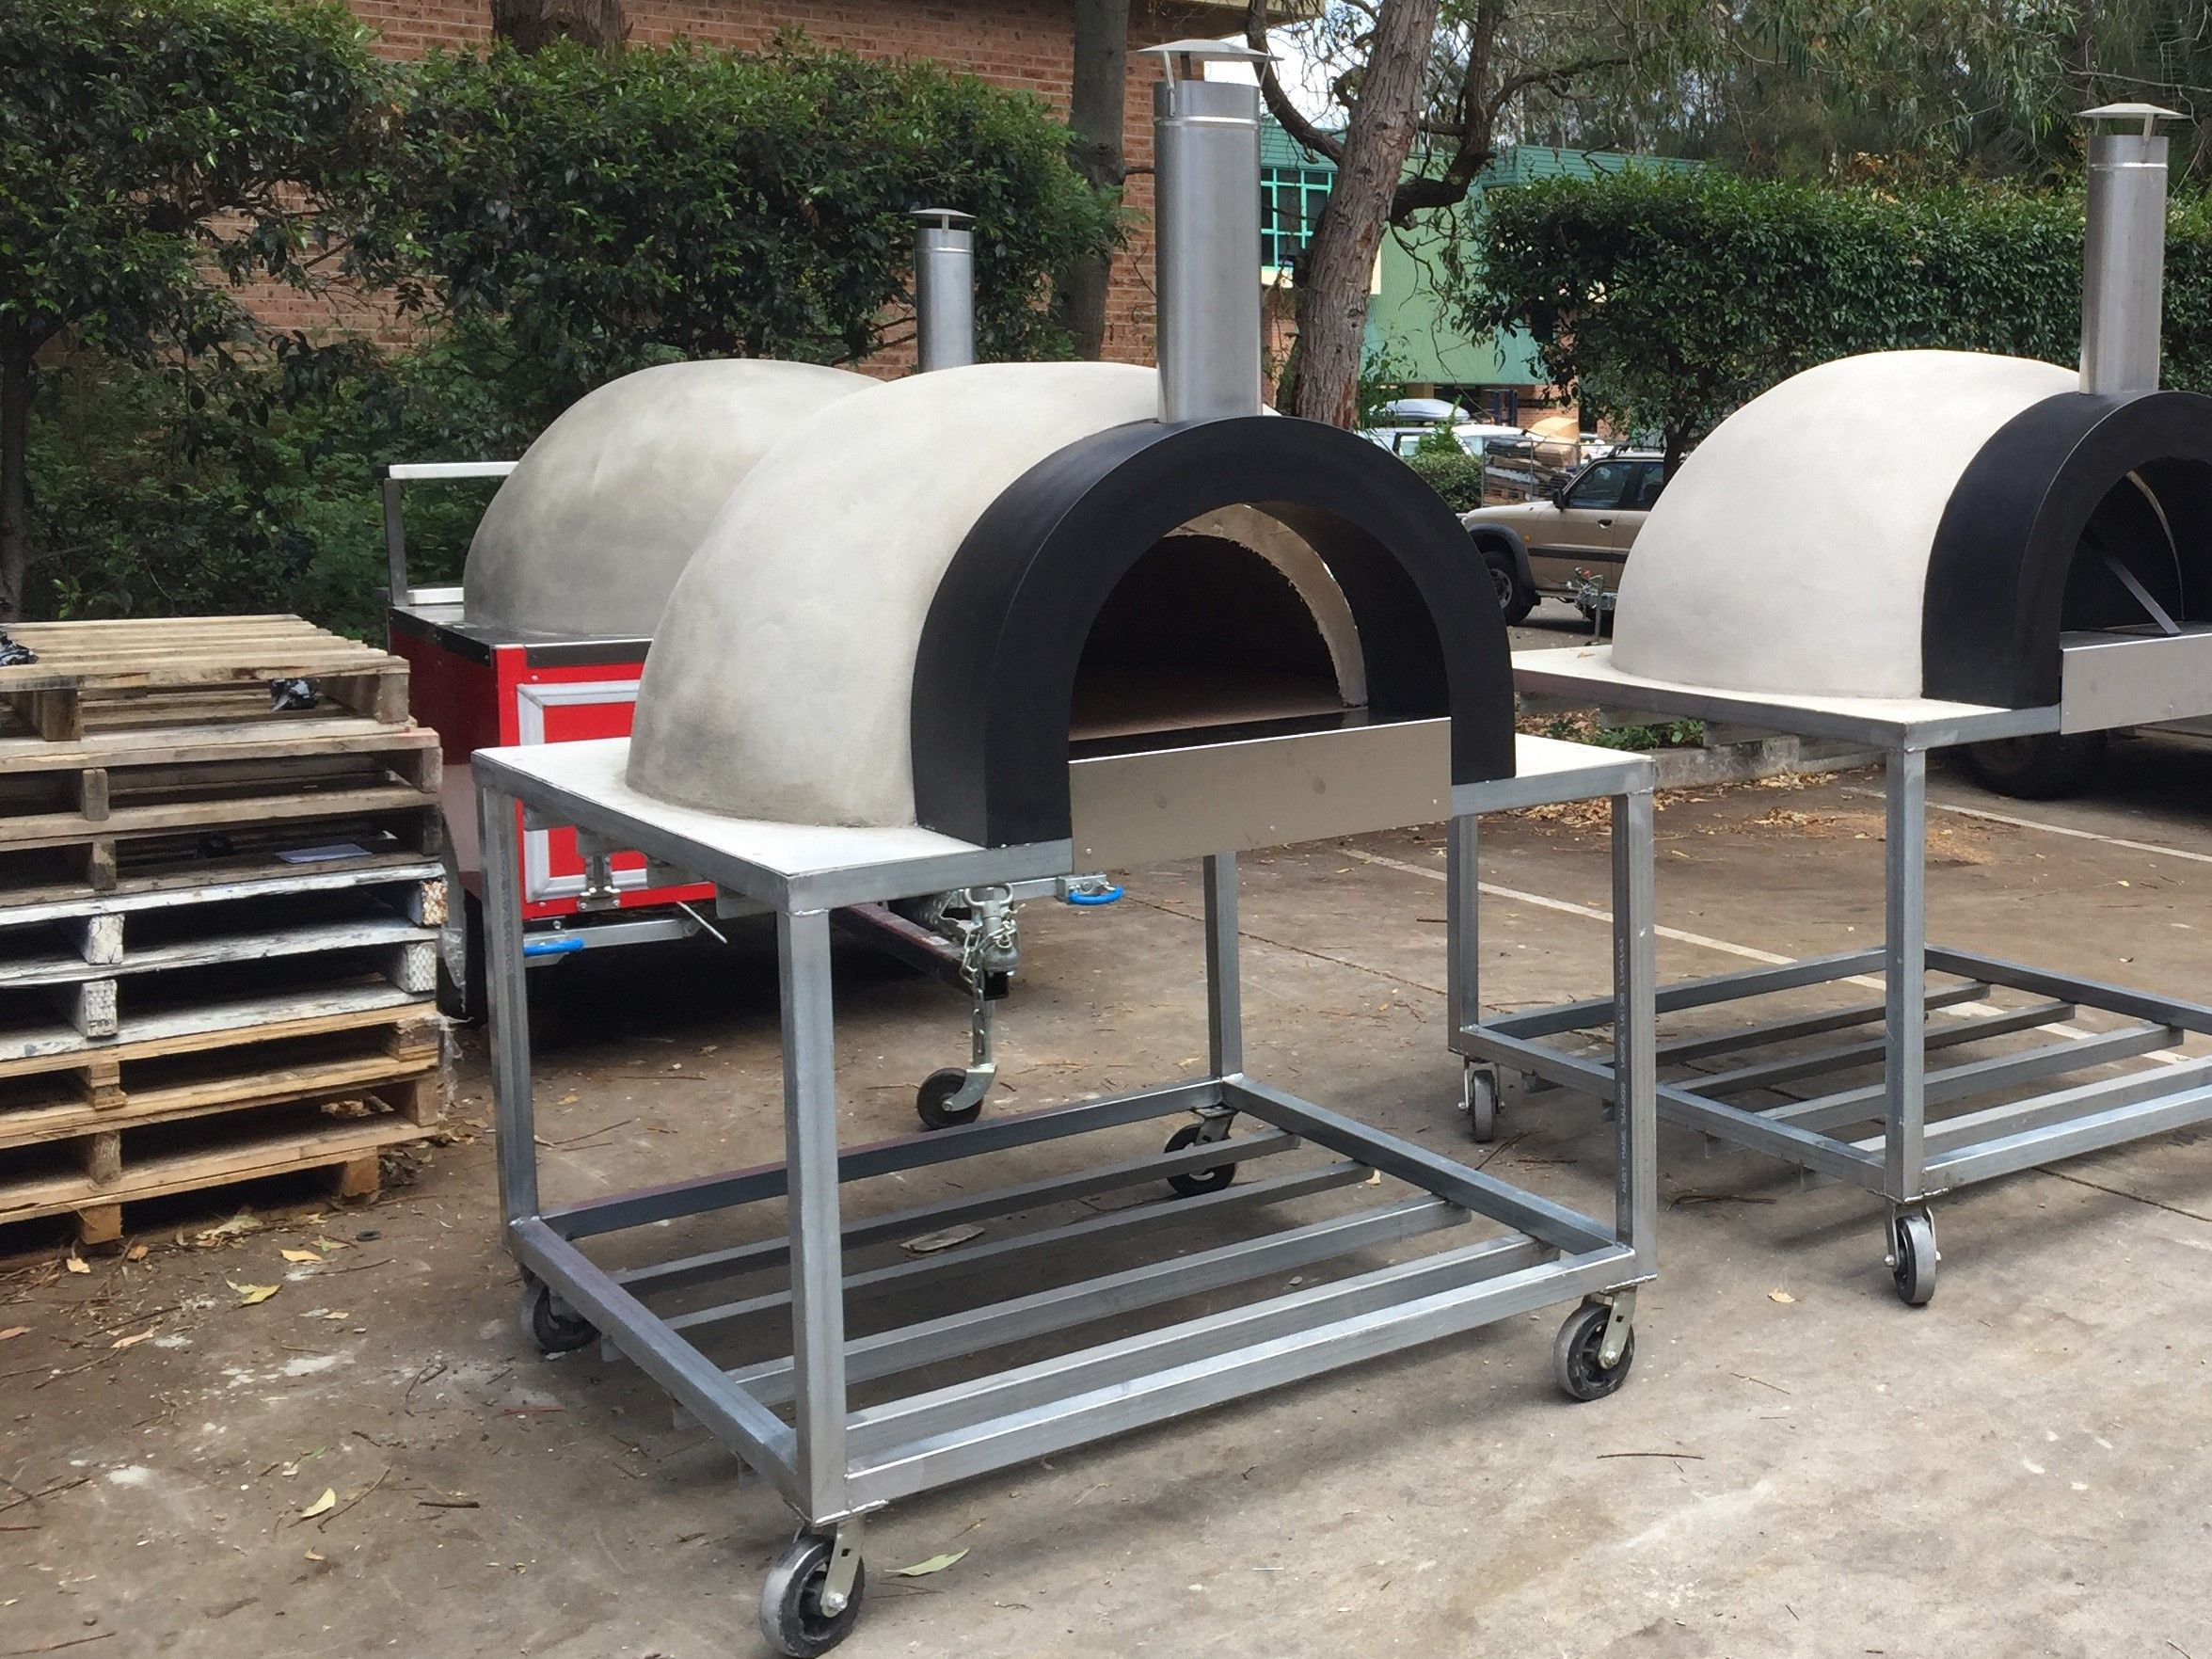 Buy Calabrese Entertainer Woodfired Pizza Oven Diy Kit